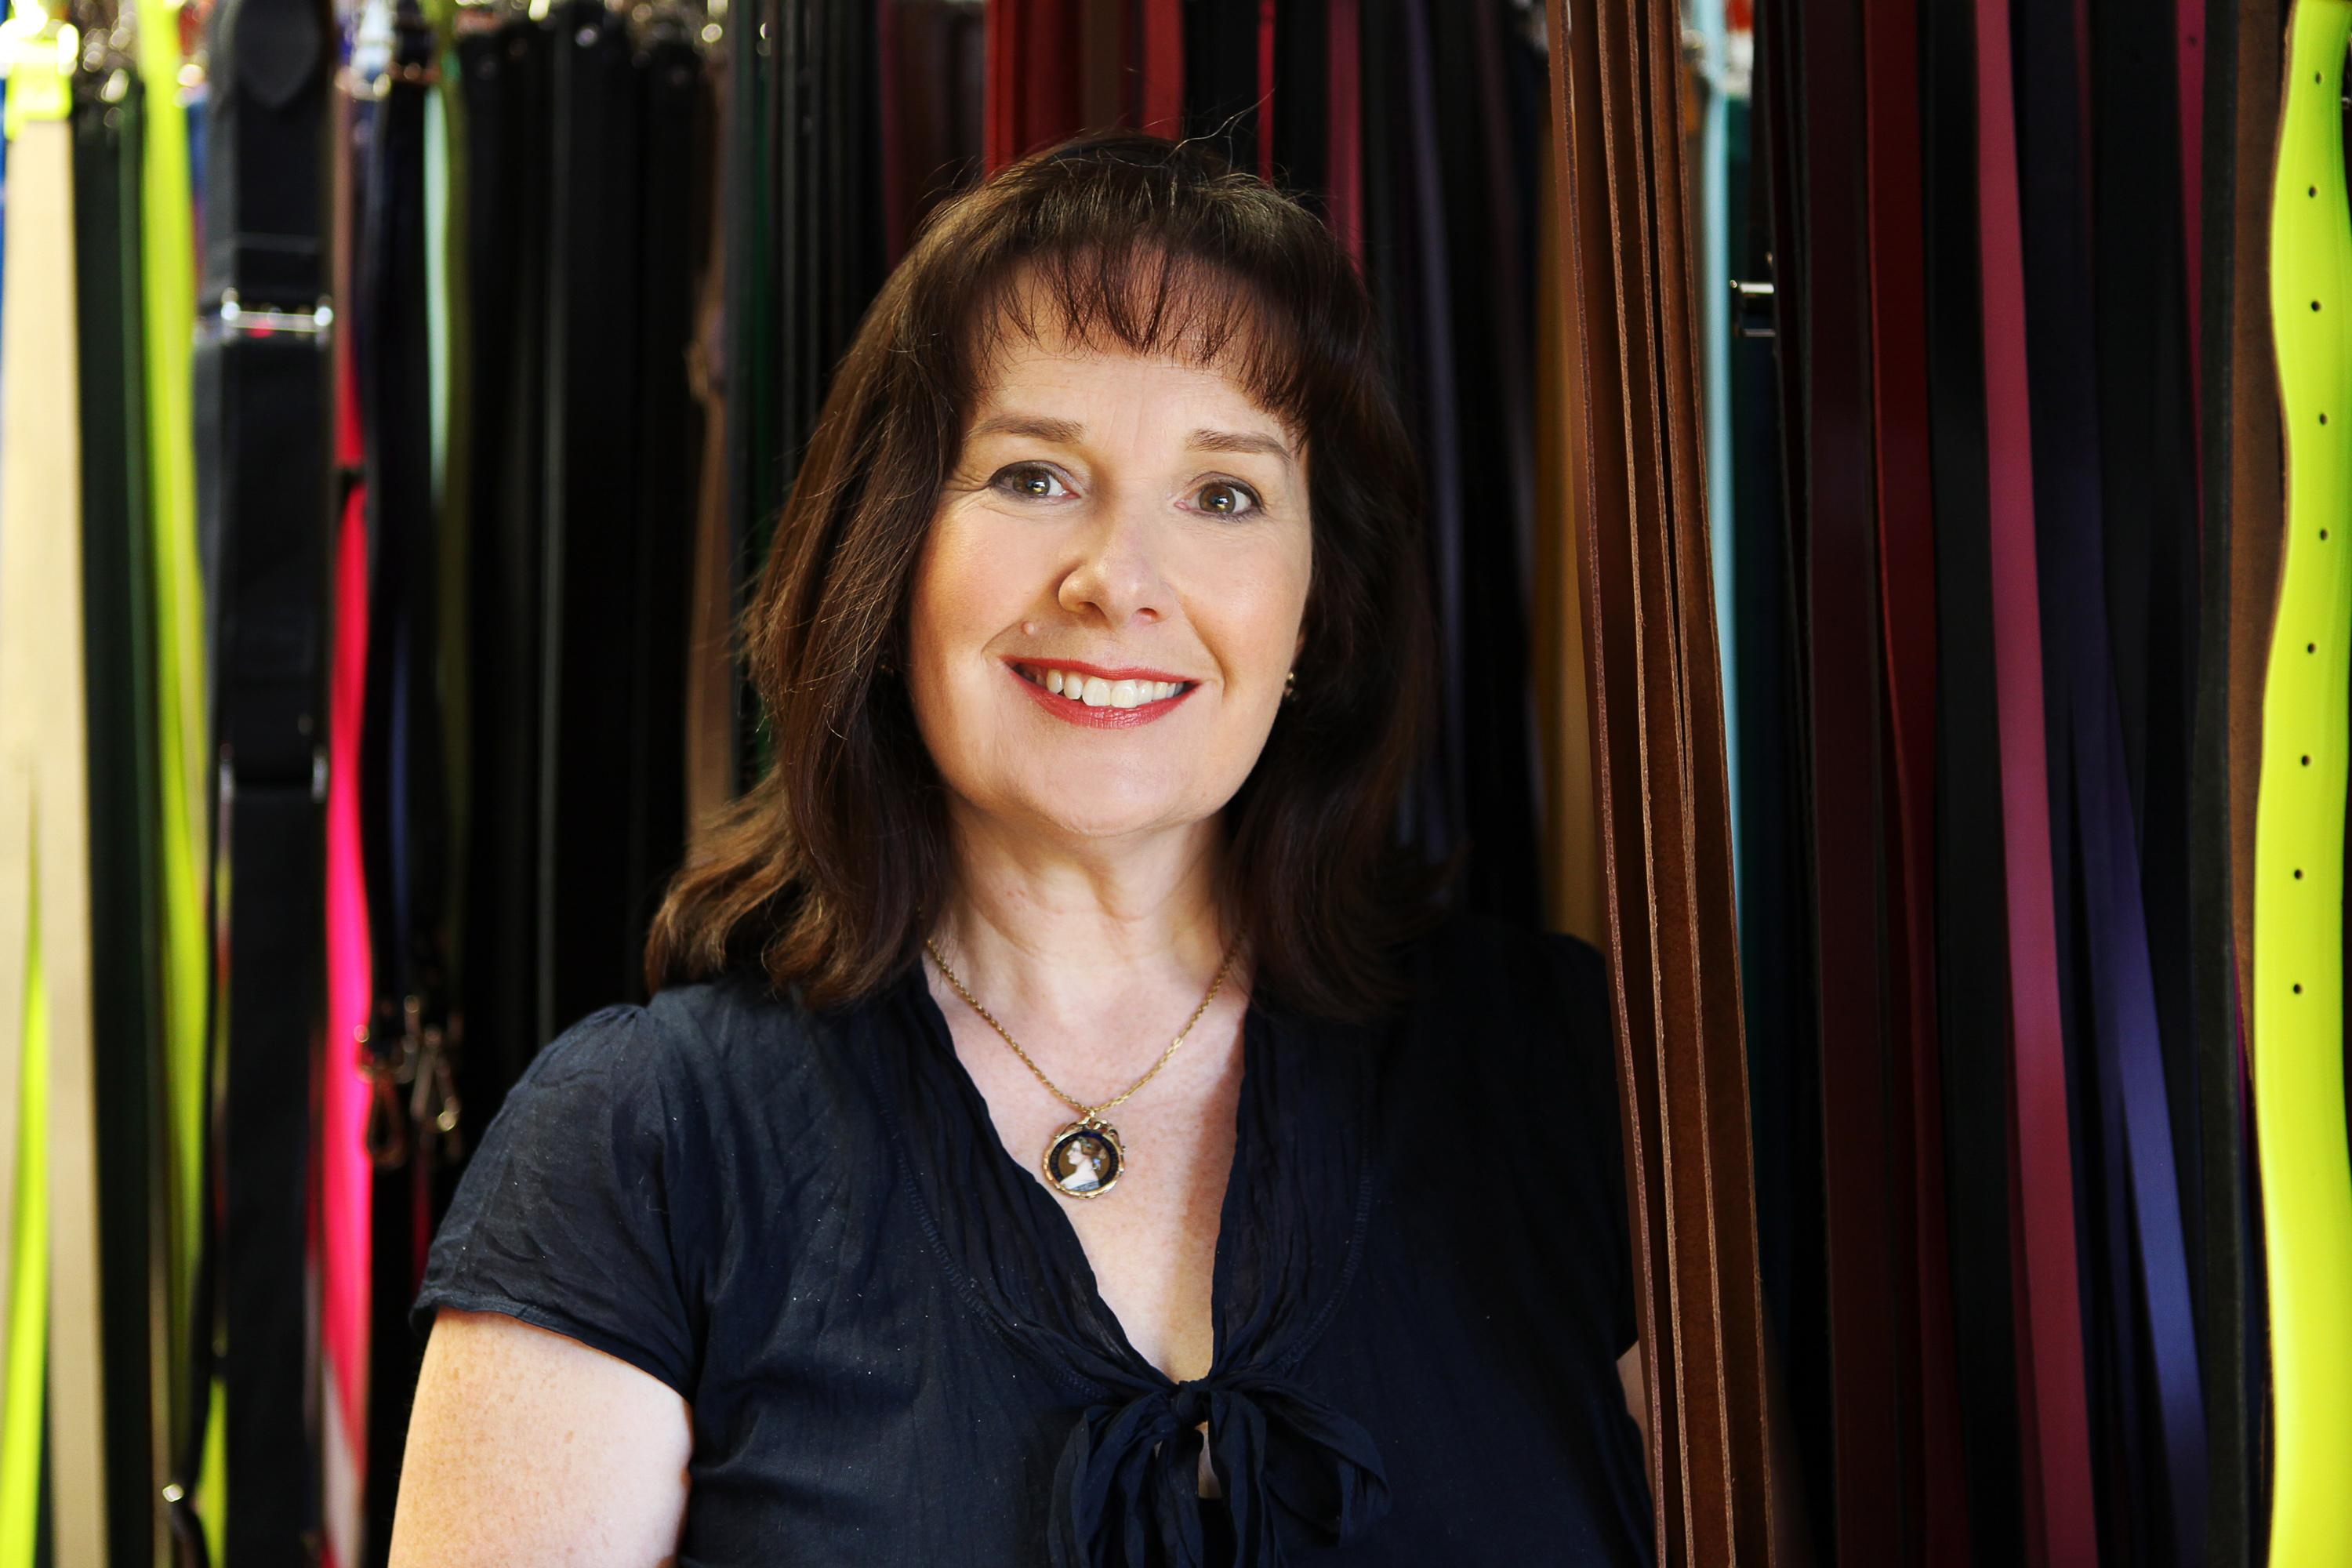 Cambridge Satchel - Meet Julie Deane